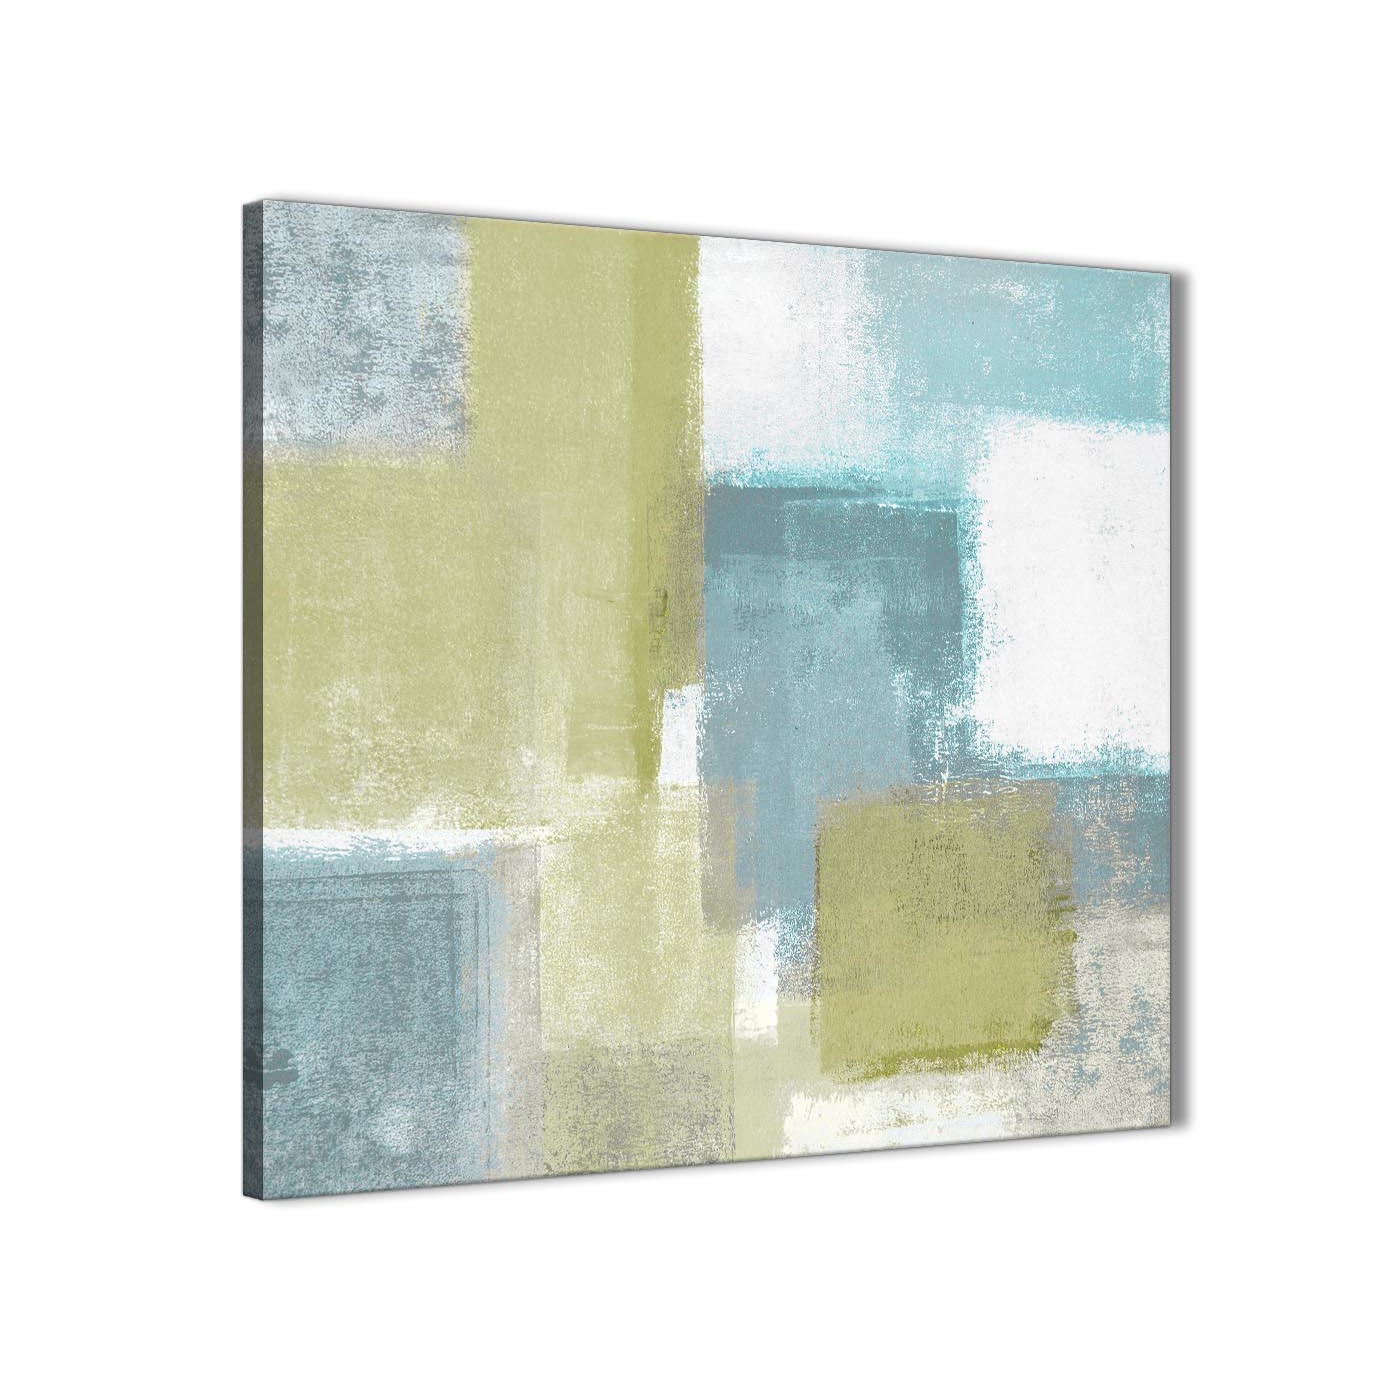 Teal And Green Wall Art - black teal abstract cloud photography ...